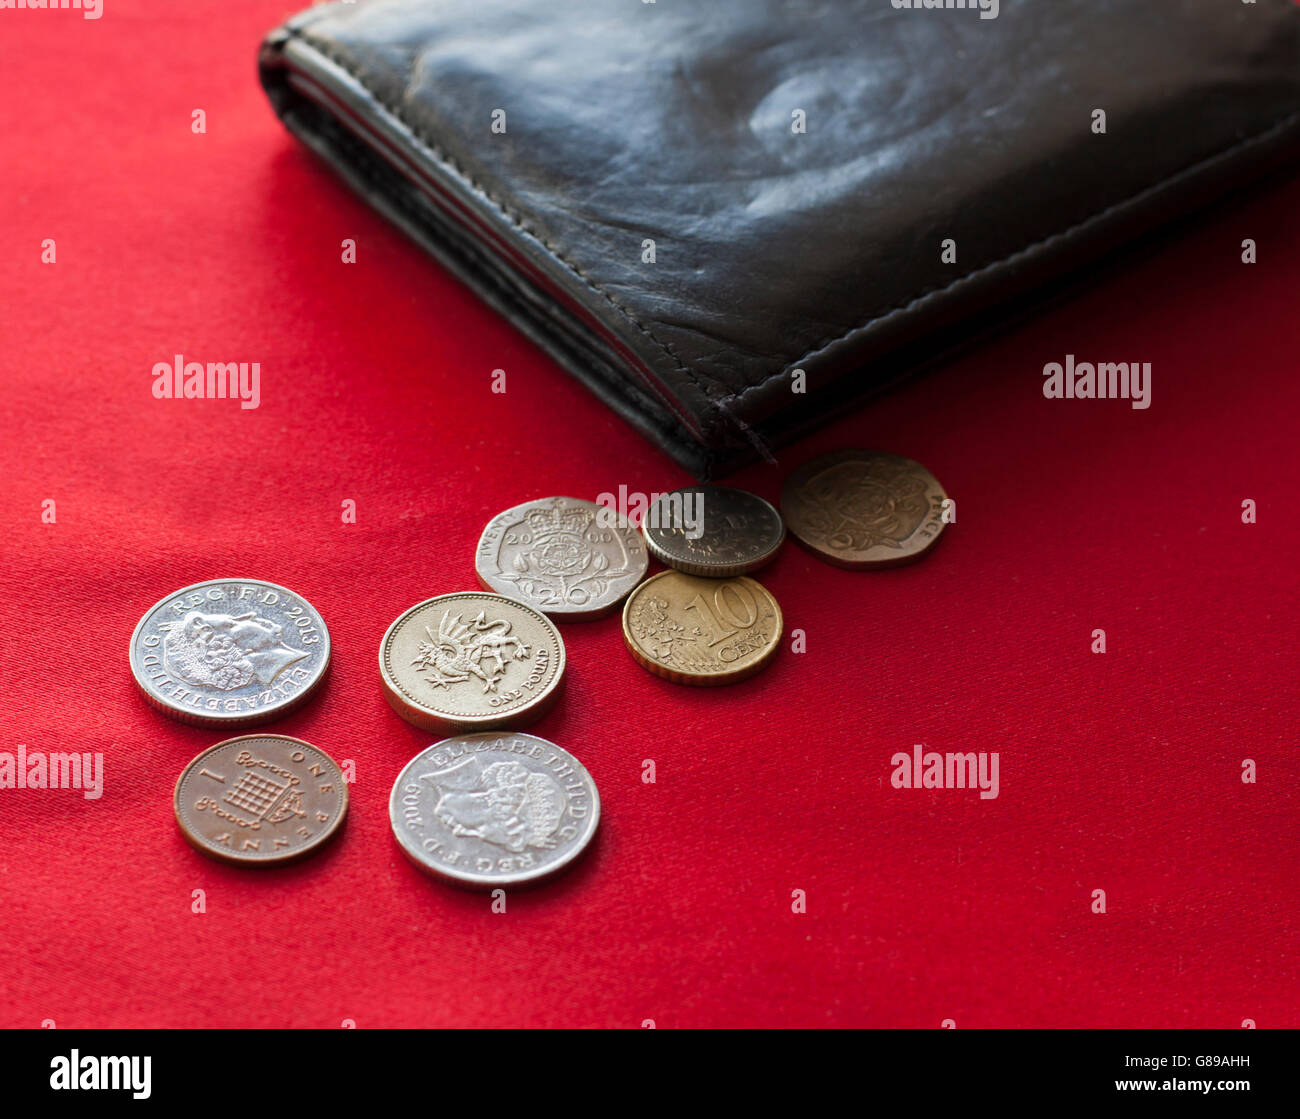 Pounds and Euro coins spilling out from leather black wallet. Red background. Stock Photo